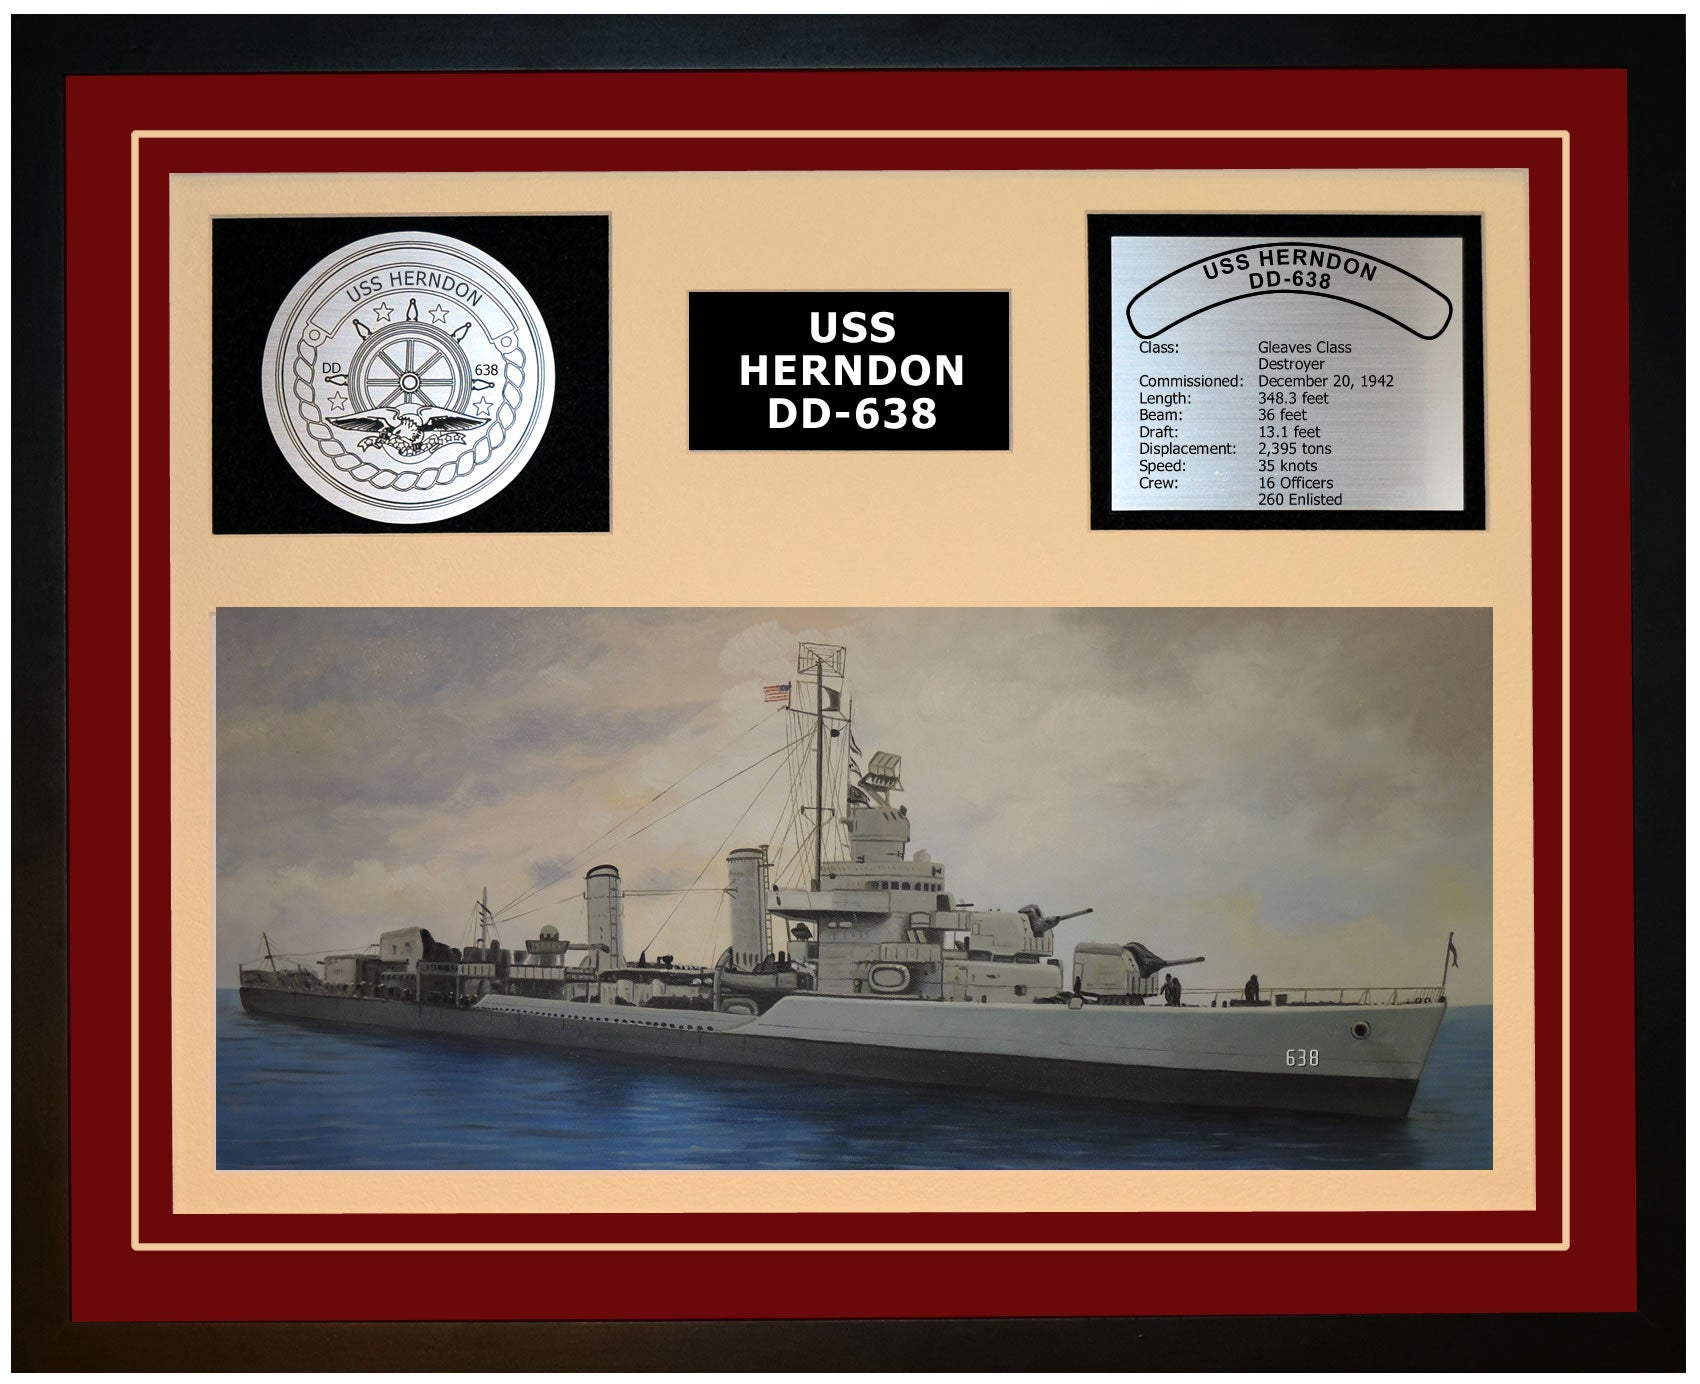 USS HERNDON DD-638 Framed Navy Ship Display Burgundy